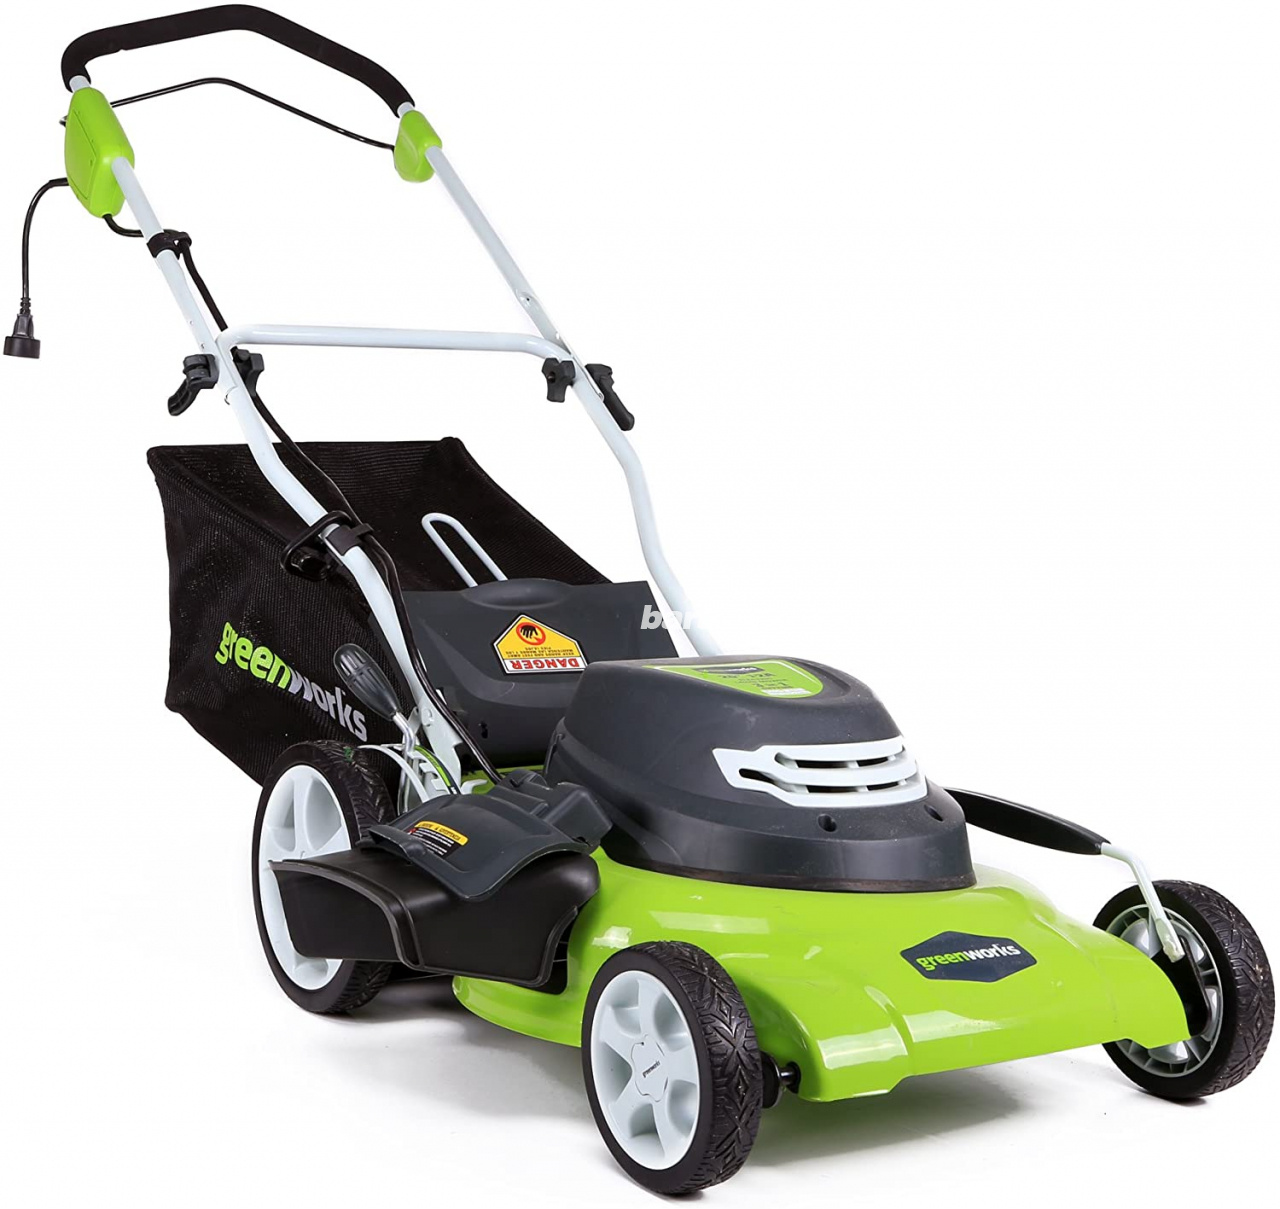 Greenworks 20-Inch 3-in-1 12 Amp Electric Corded